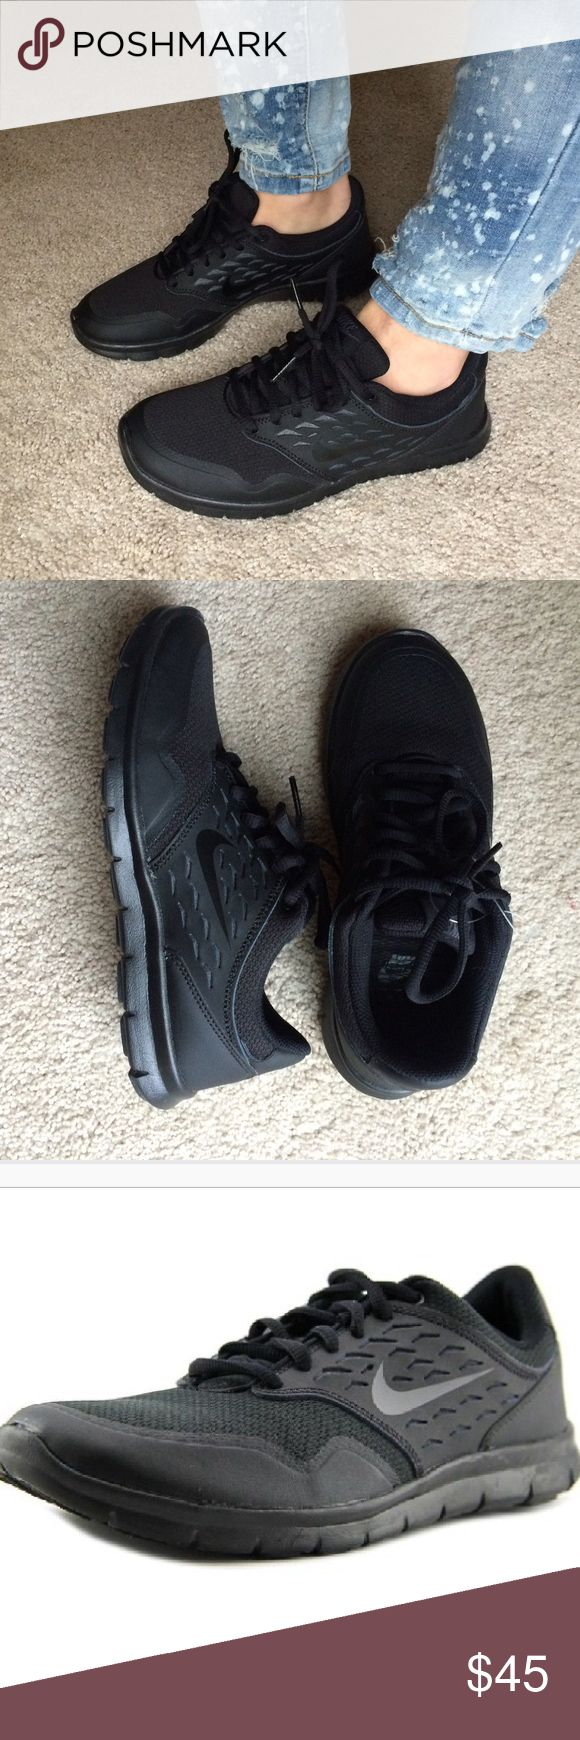 New nike orive nm sneaker black 6 New- bought and were too small, never worn, only tried on inside. Nike orive nm all black sneakers, perfect for casual wear or running. NO TRADES Nike Shoes Sneakers